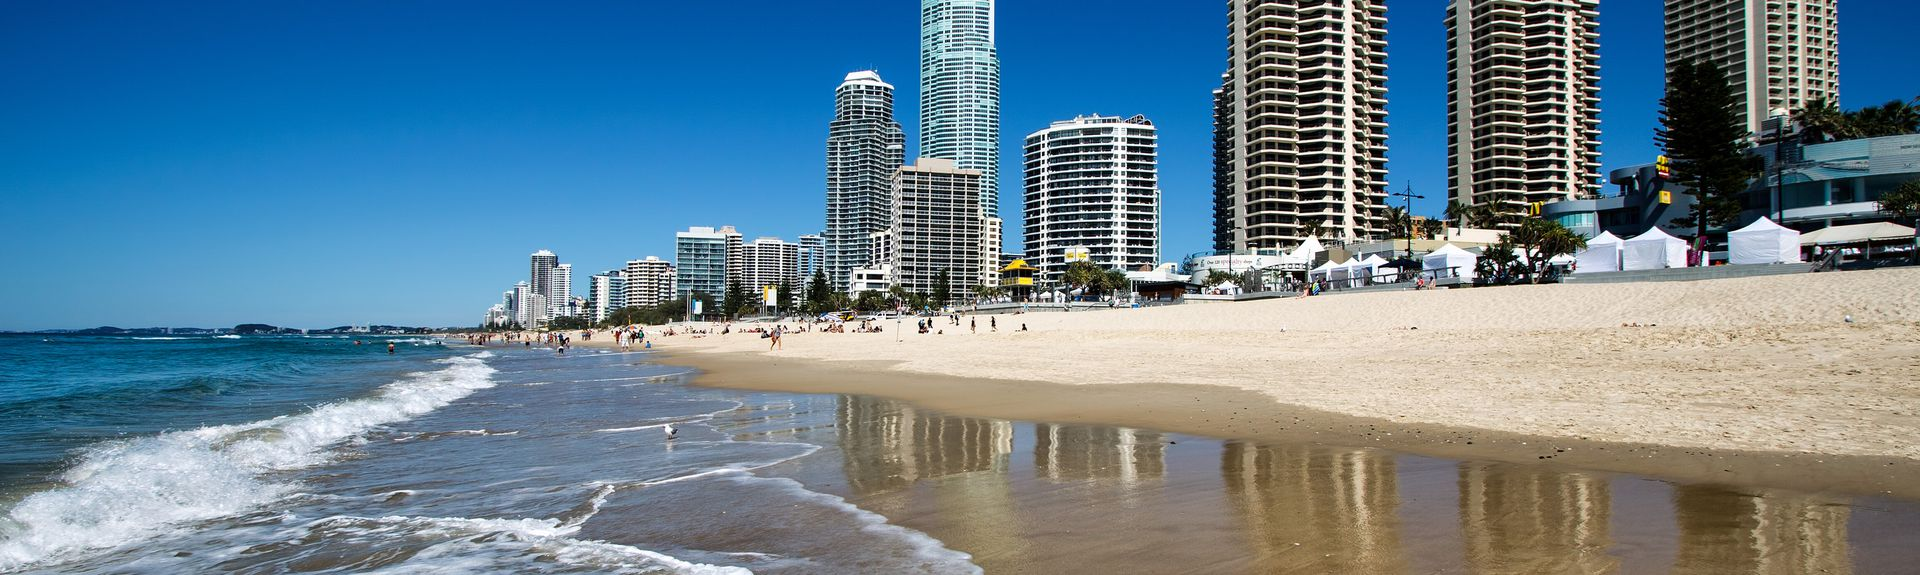 Gold Coast City, QLD, Australia